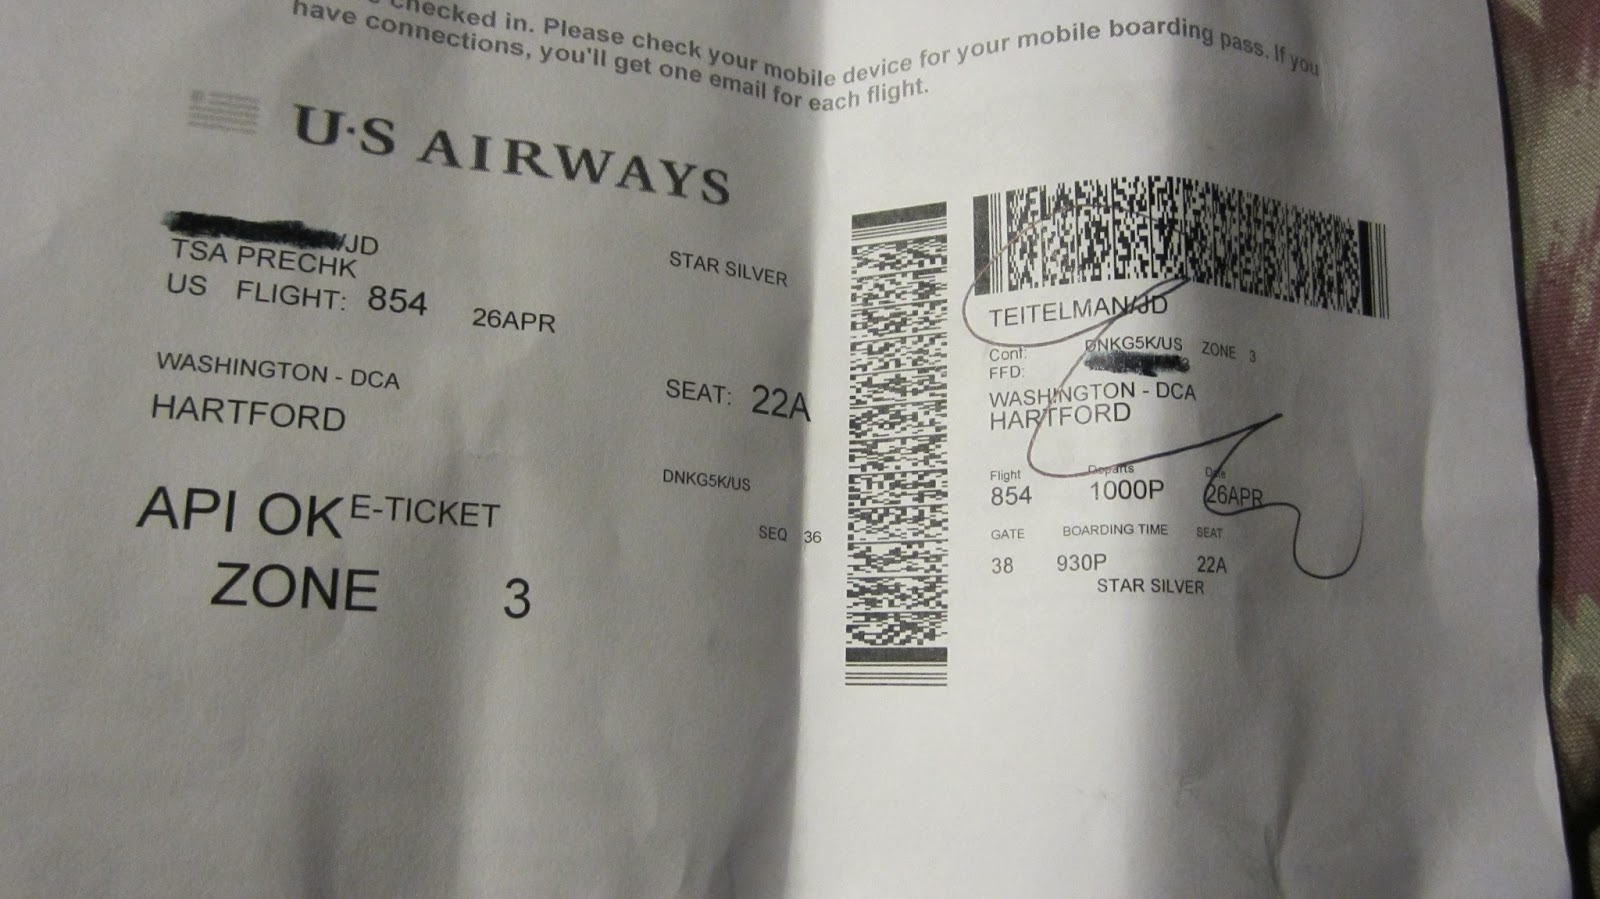 US Airways Adds TSA PreCheck On Boarding Passes